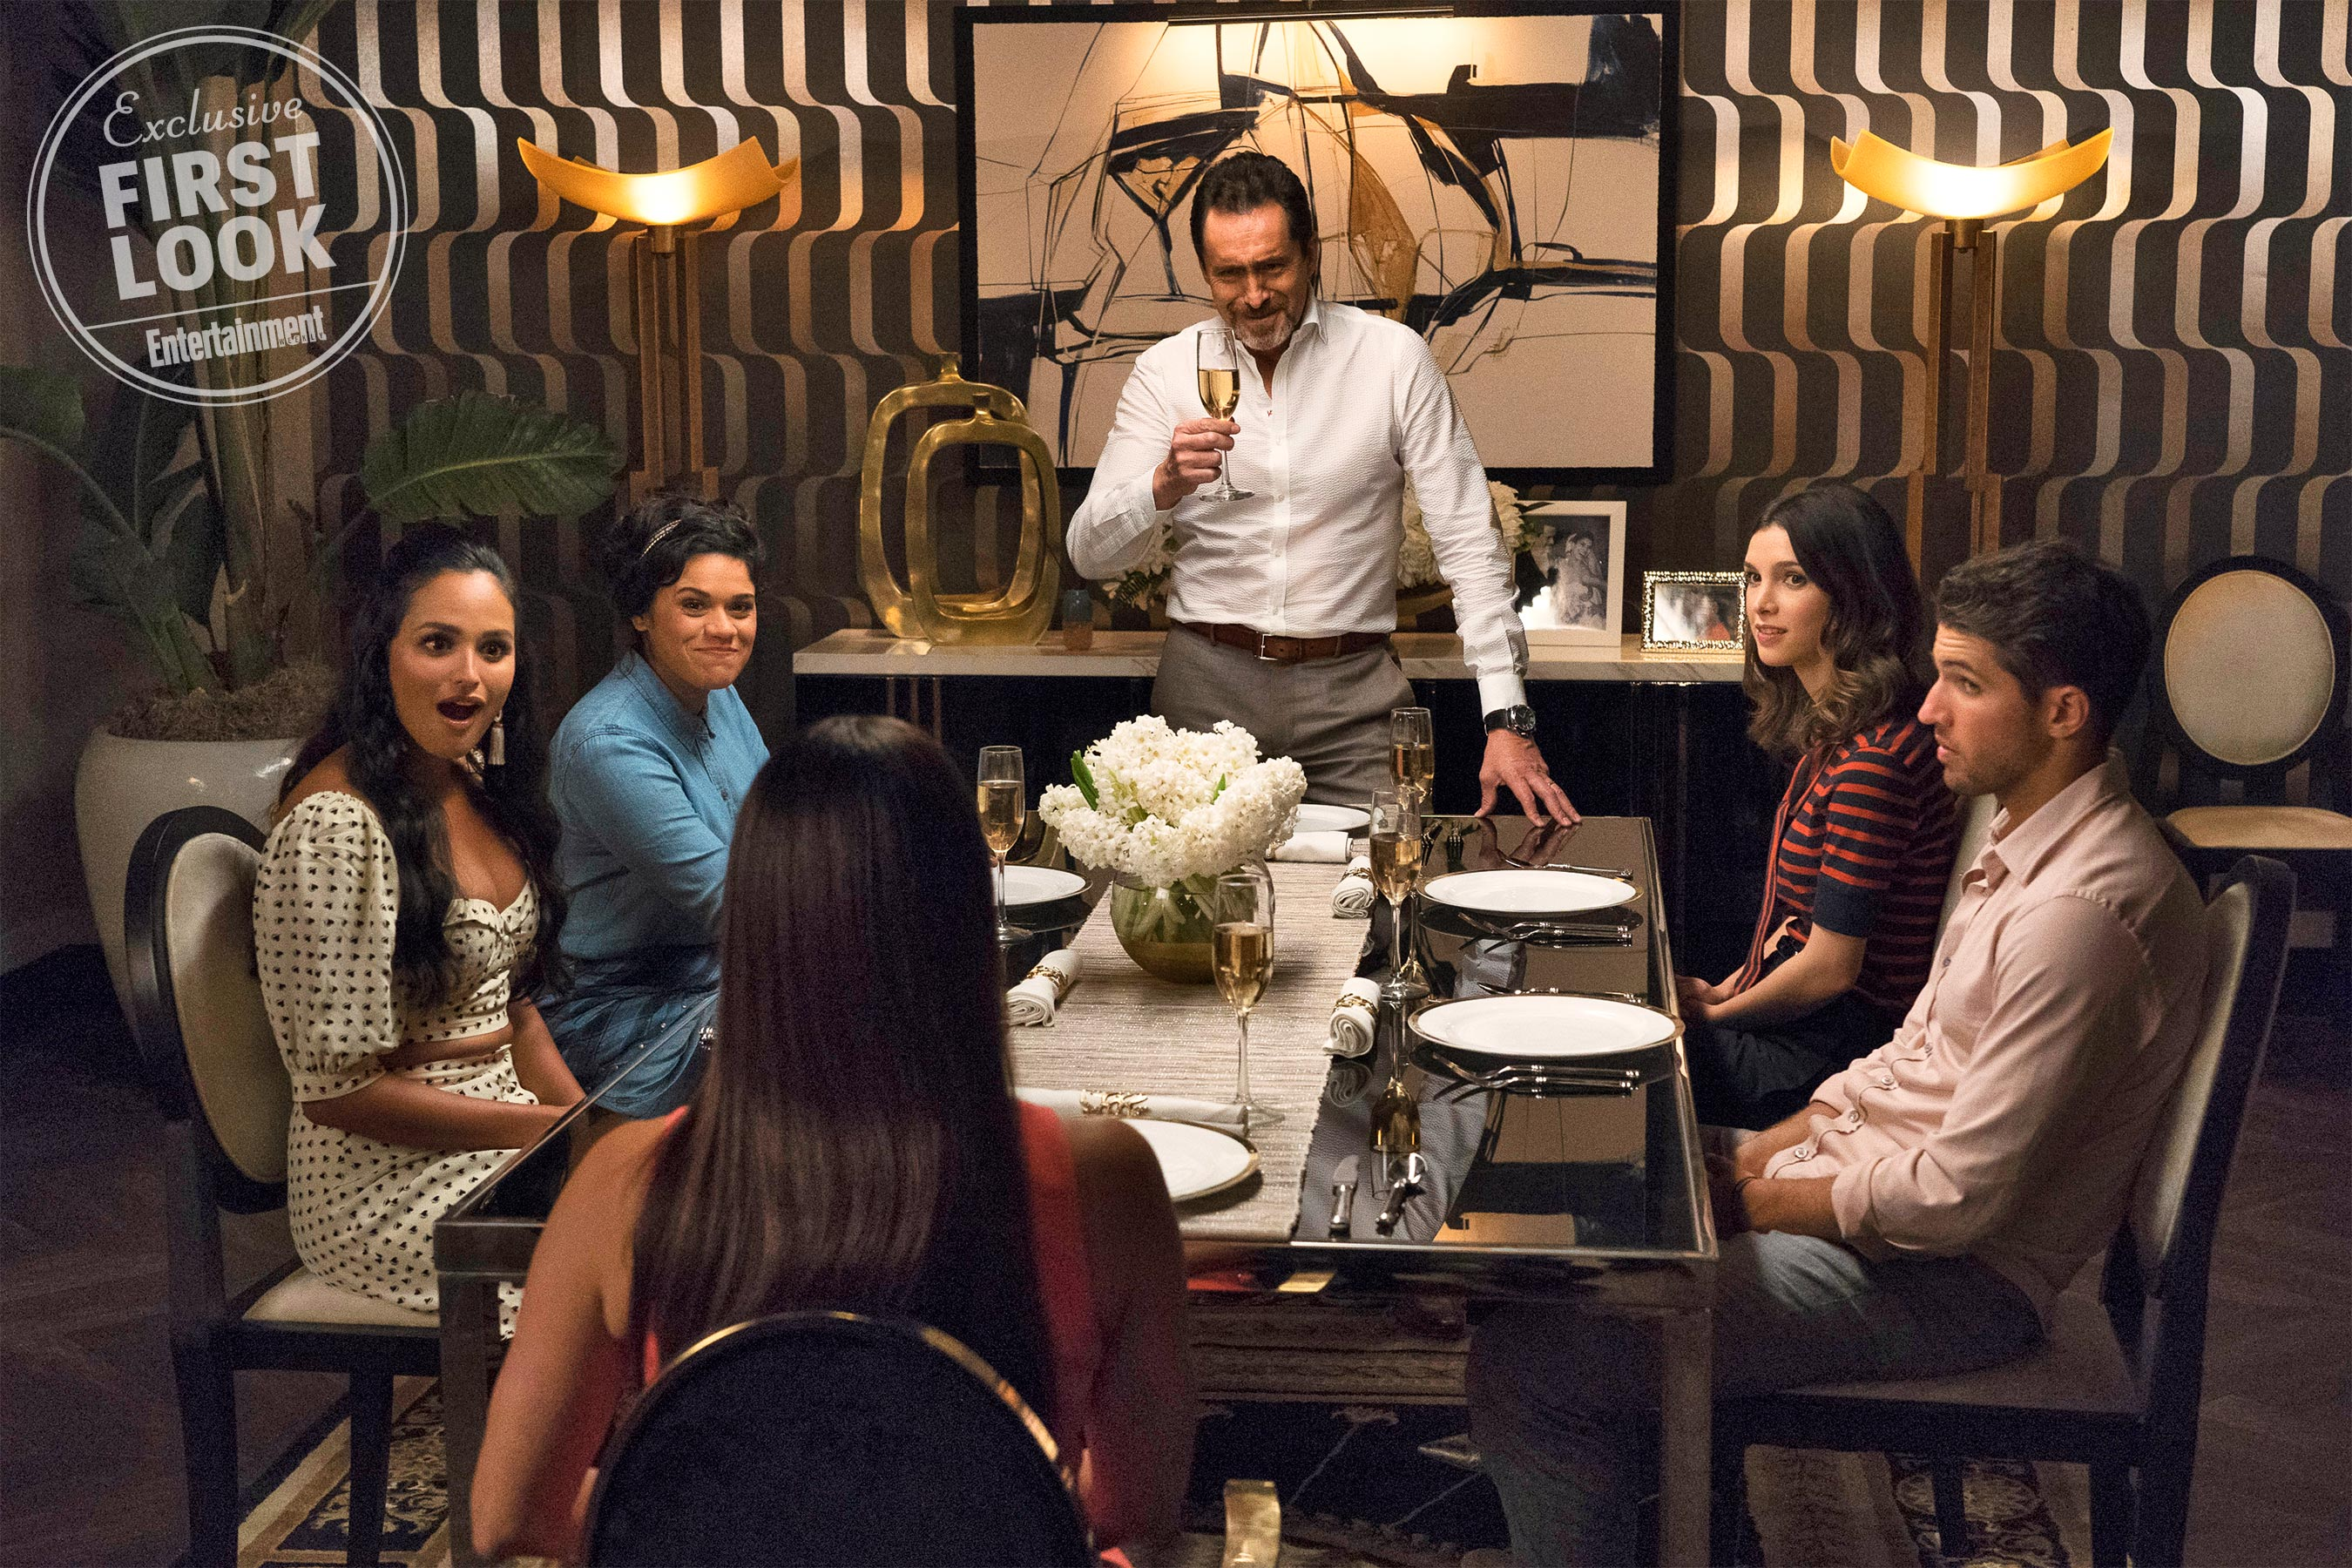 Grand Hotel: See a first look at Eva Longoria's soapy drama